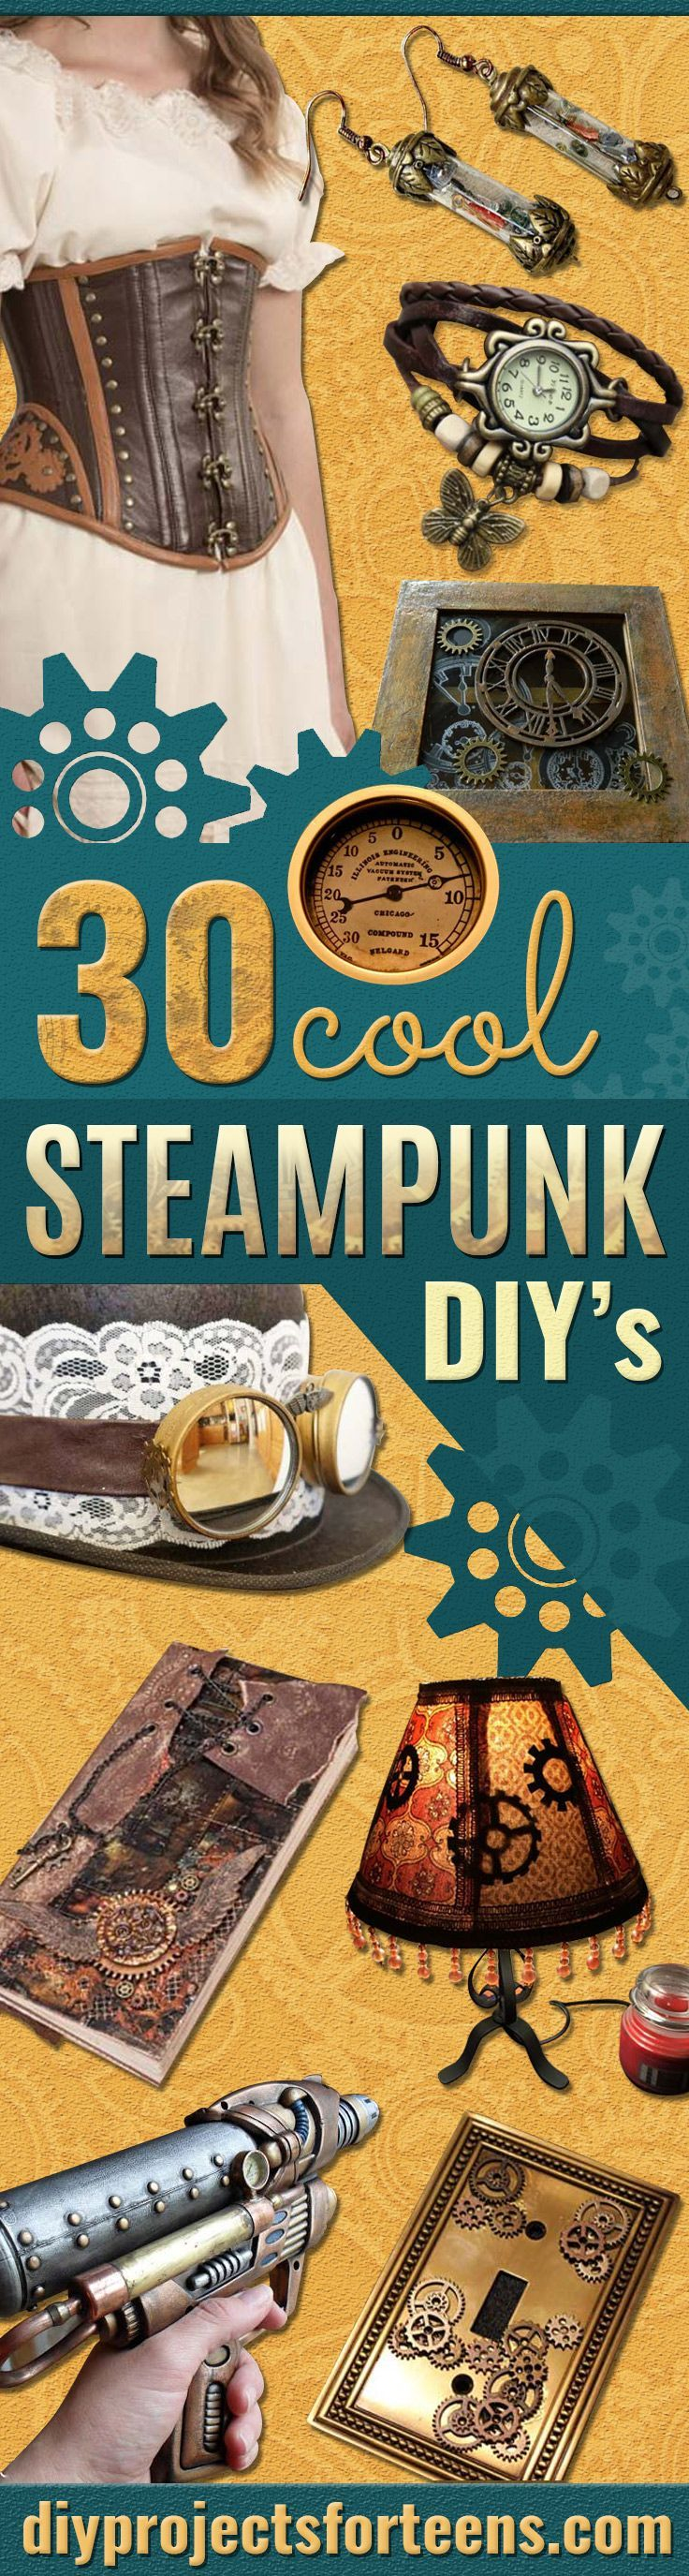 1044 Best Images About Steampunk Pipe Designs On Pinterest Steam Punk Industrial And